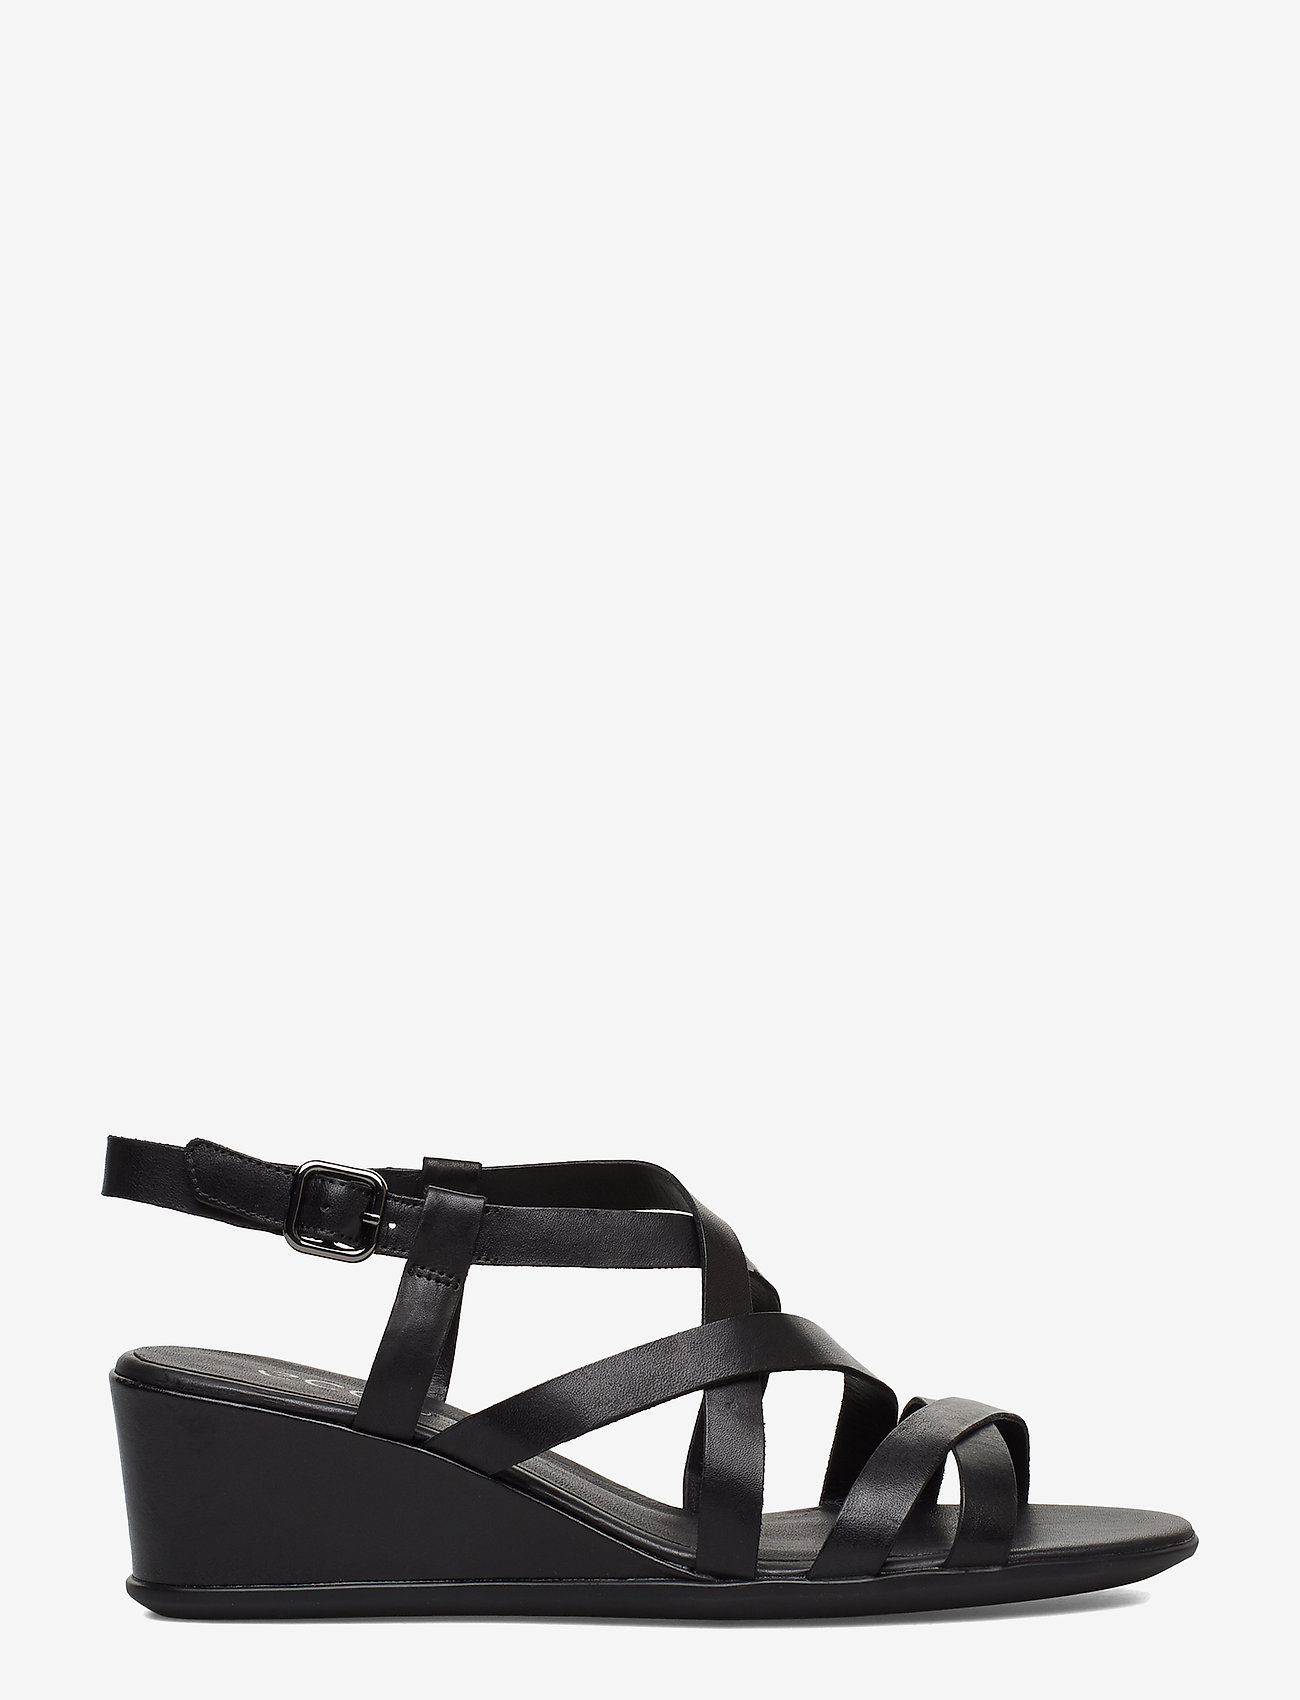 ECCO - SHAPE 35 WEDGE SANDAL - flat sandals - black - 1